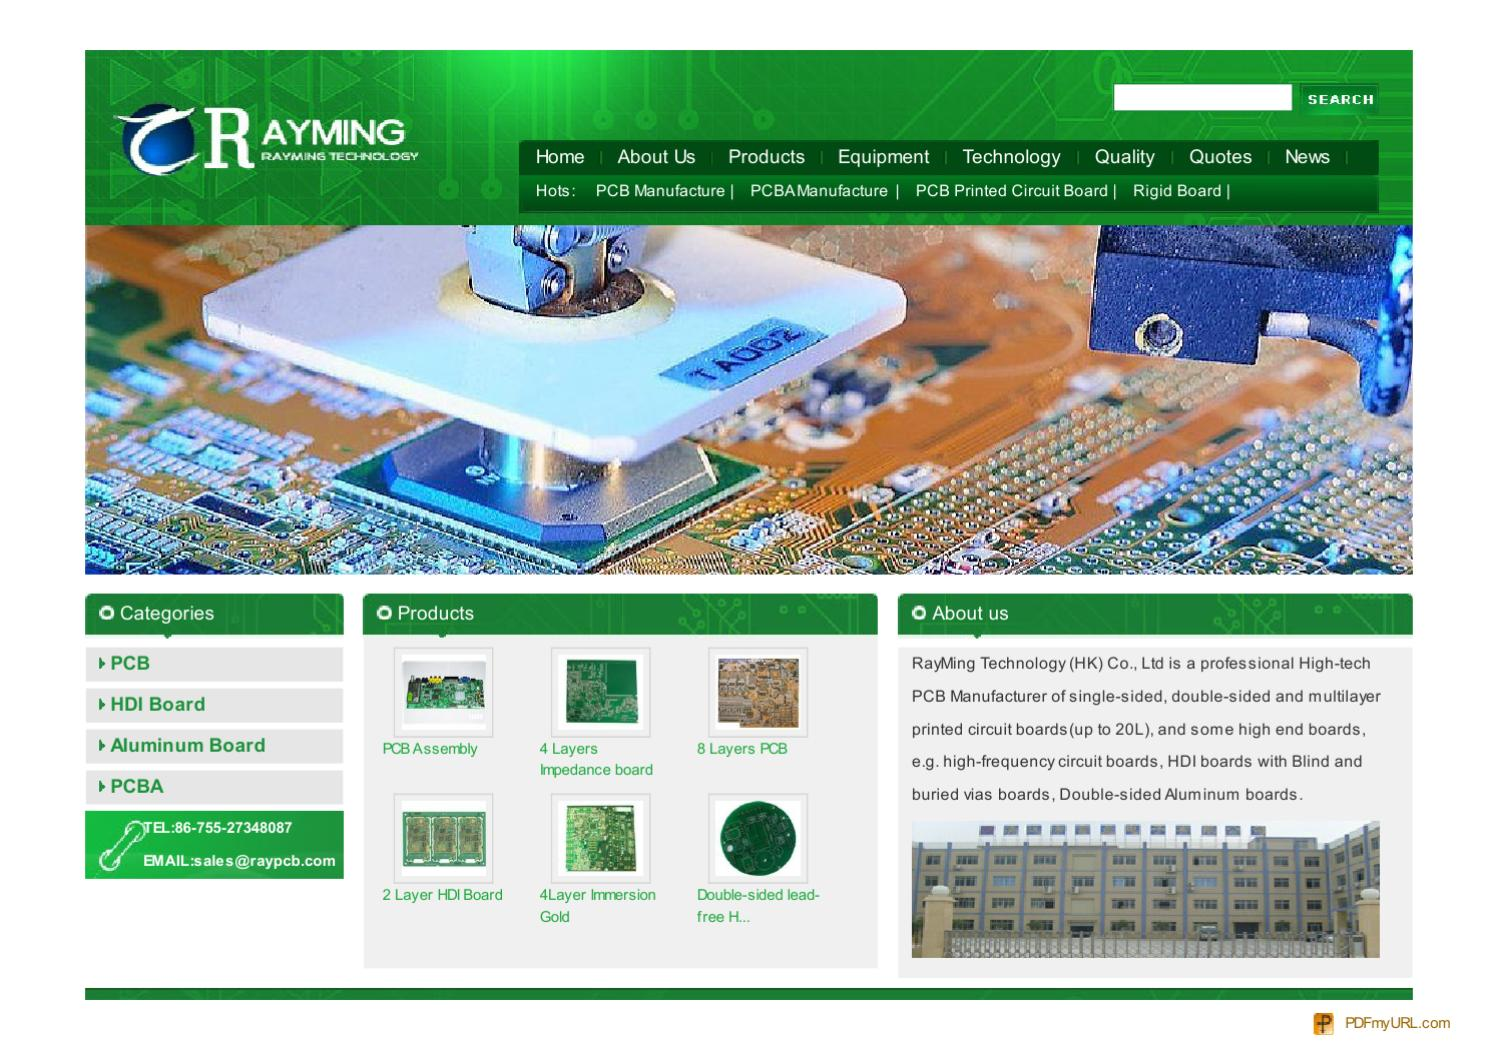 Rayming Pcb Manufacture China Manufacturers Double Sided 2layer Printed Circuit Boards Fabrication Of Suppliers By Jack Lei Issuu